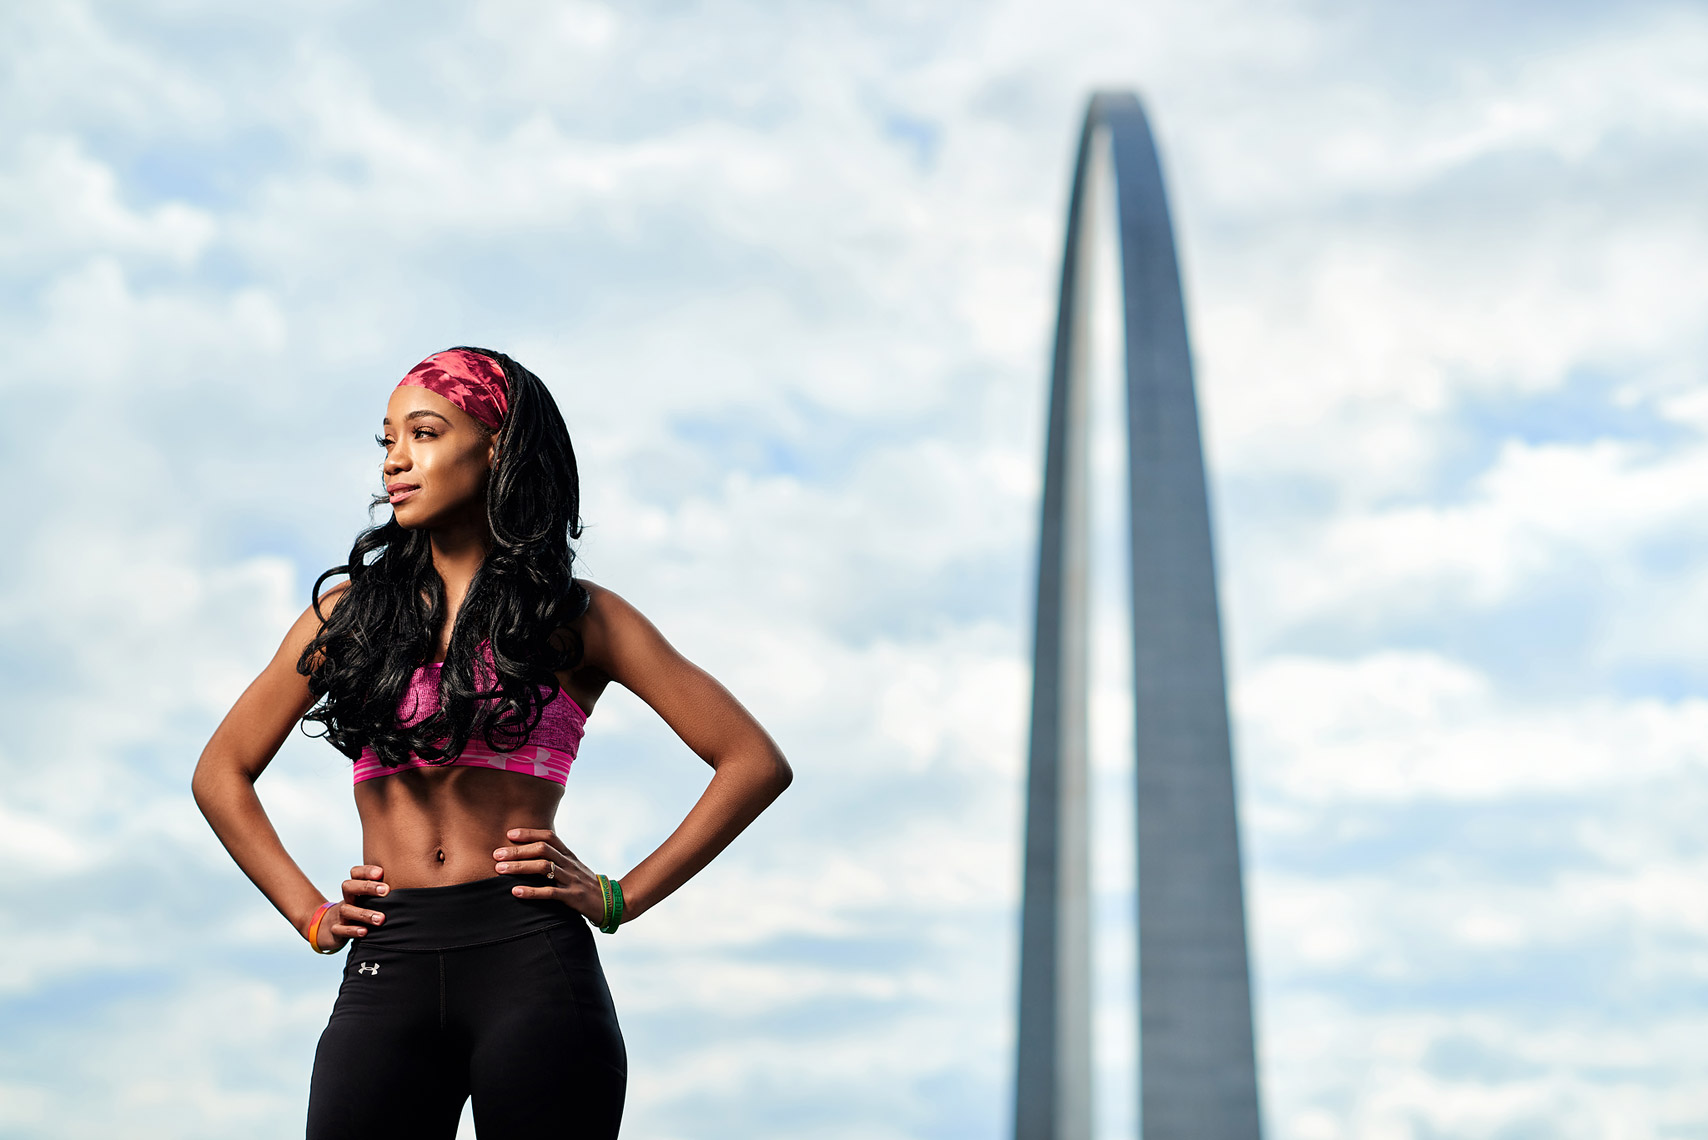 Fitness model with St. Louis Arch in background.